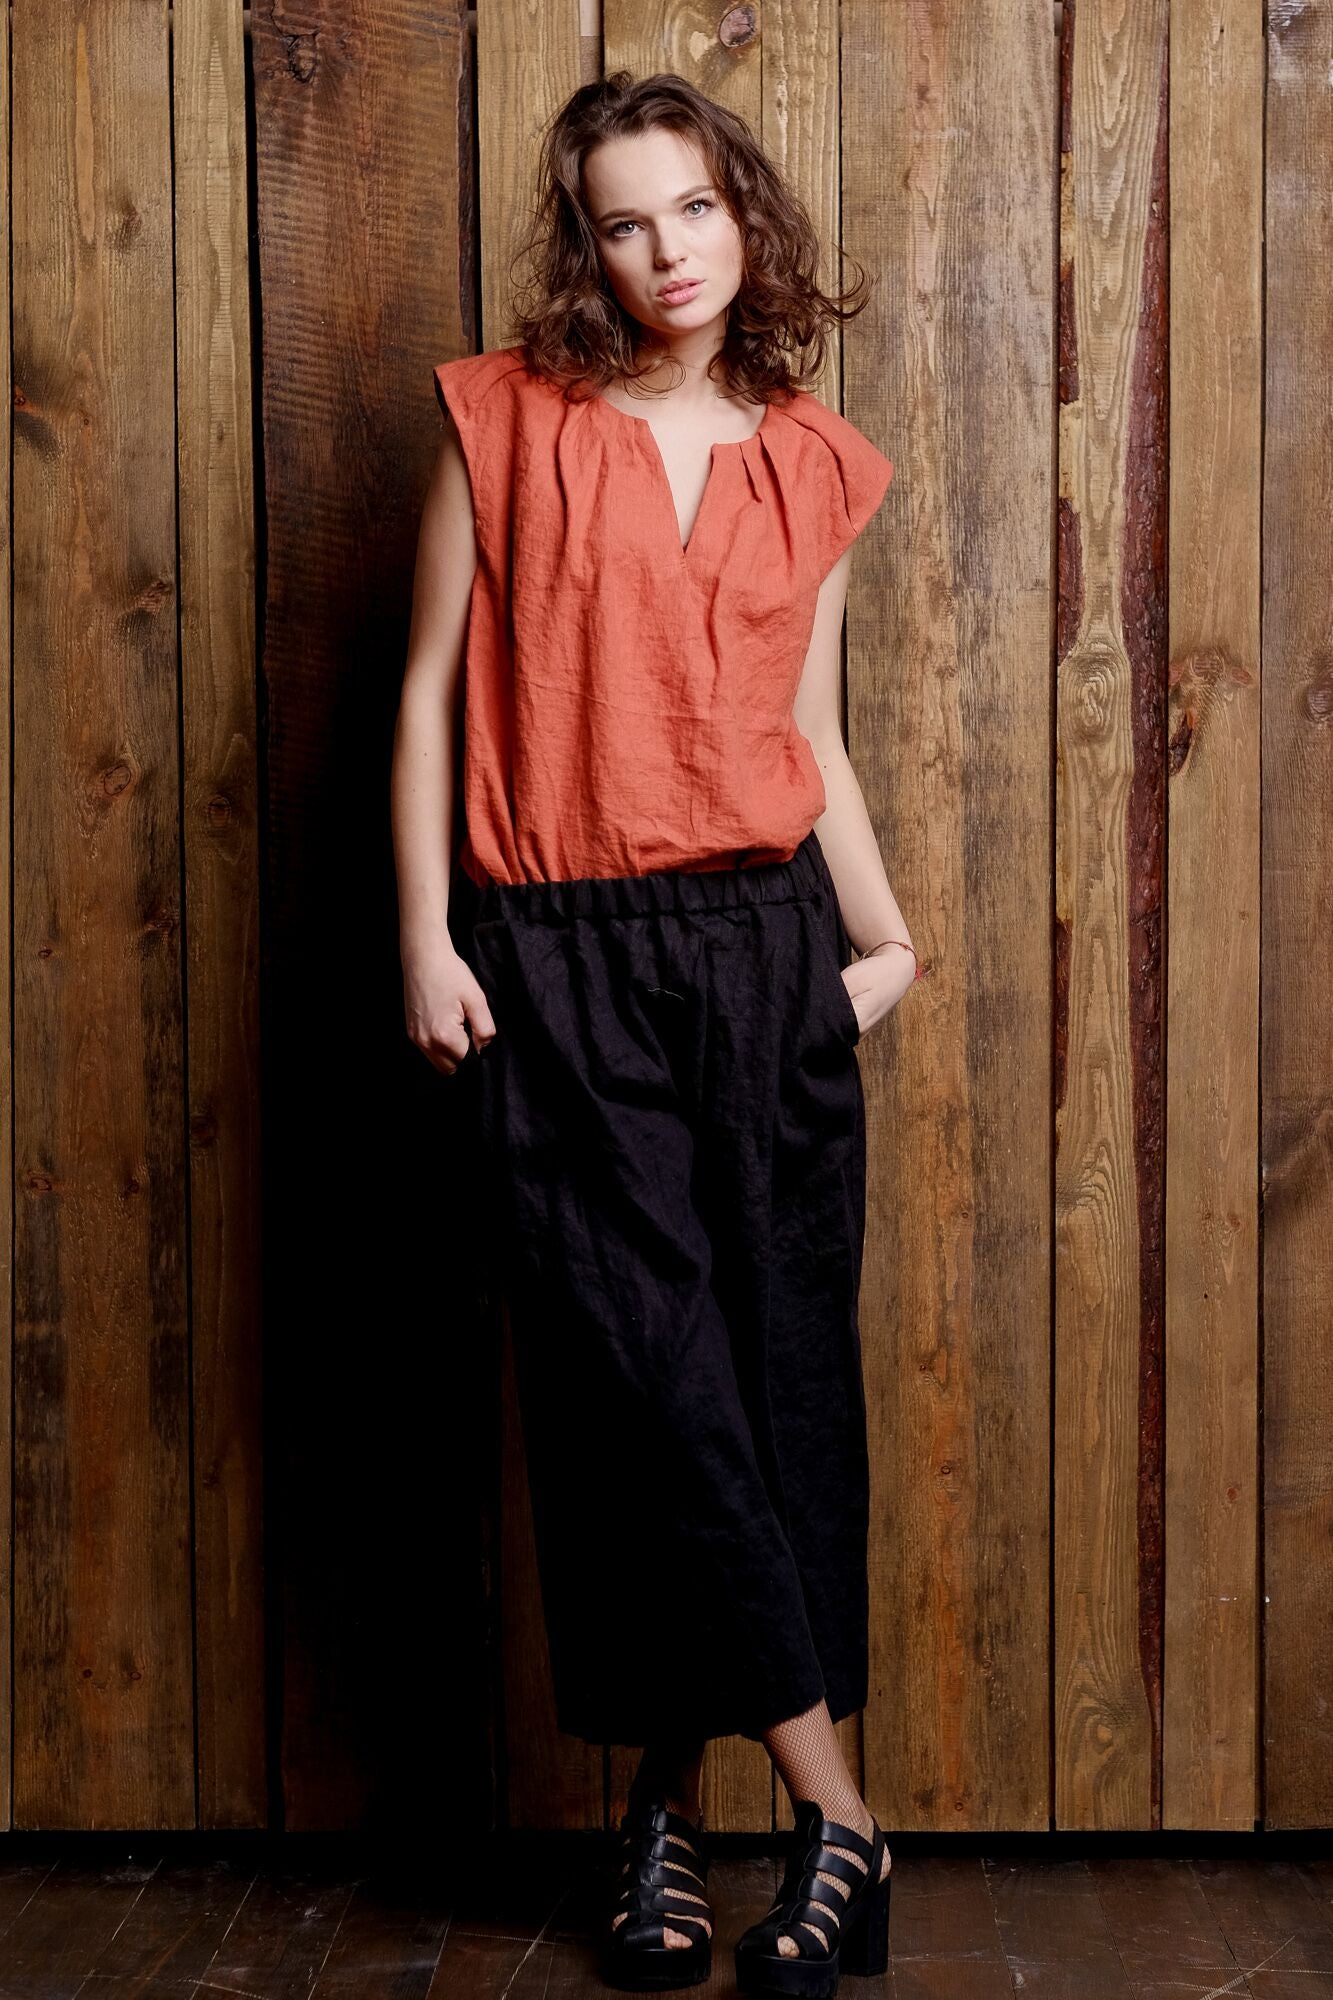 linen-red-sleeveless-top-black-pants-classy-clothing-elegant-flax